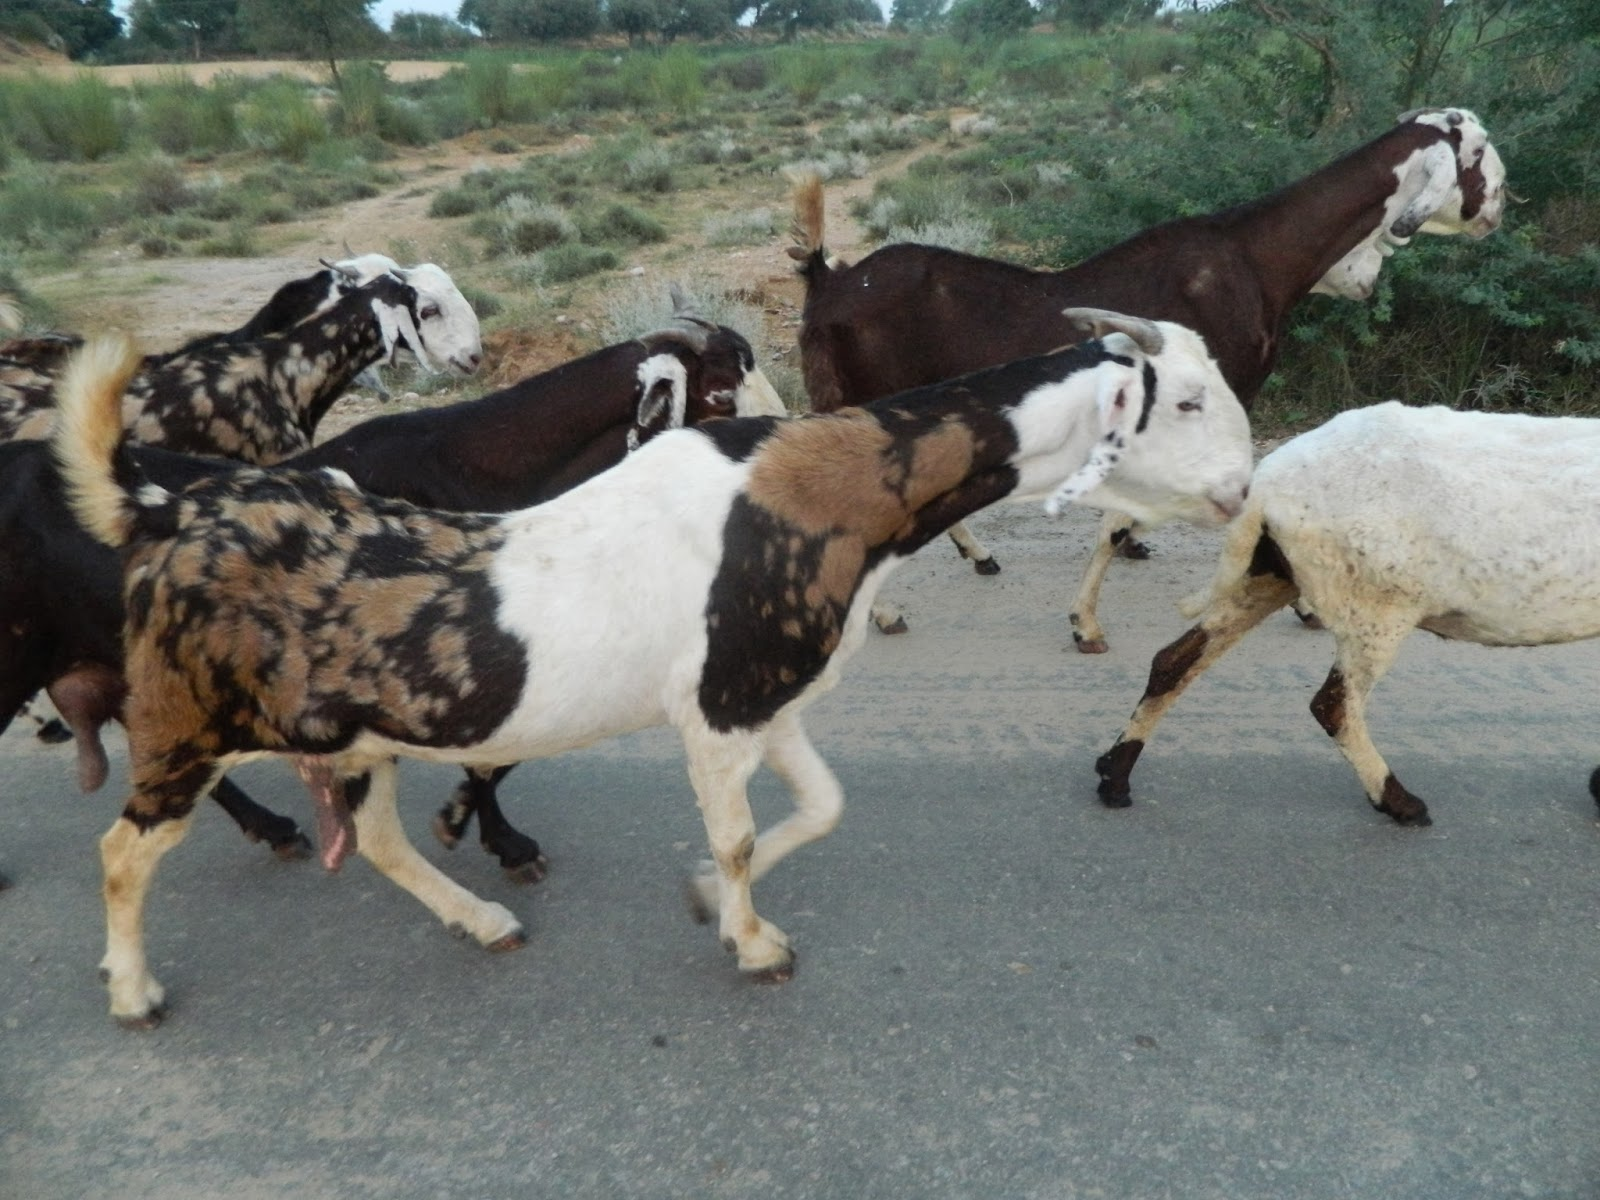 GOAT FARMING IN INDIA - Consultancy Services by Goatgyan